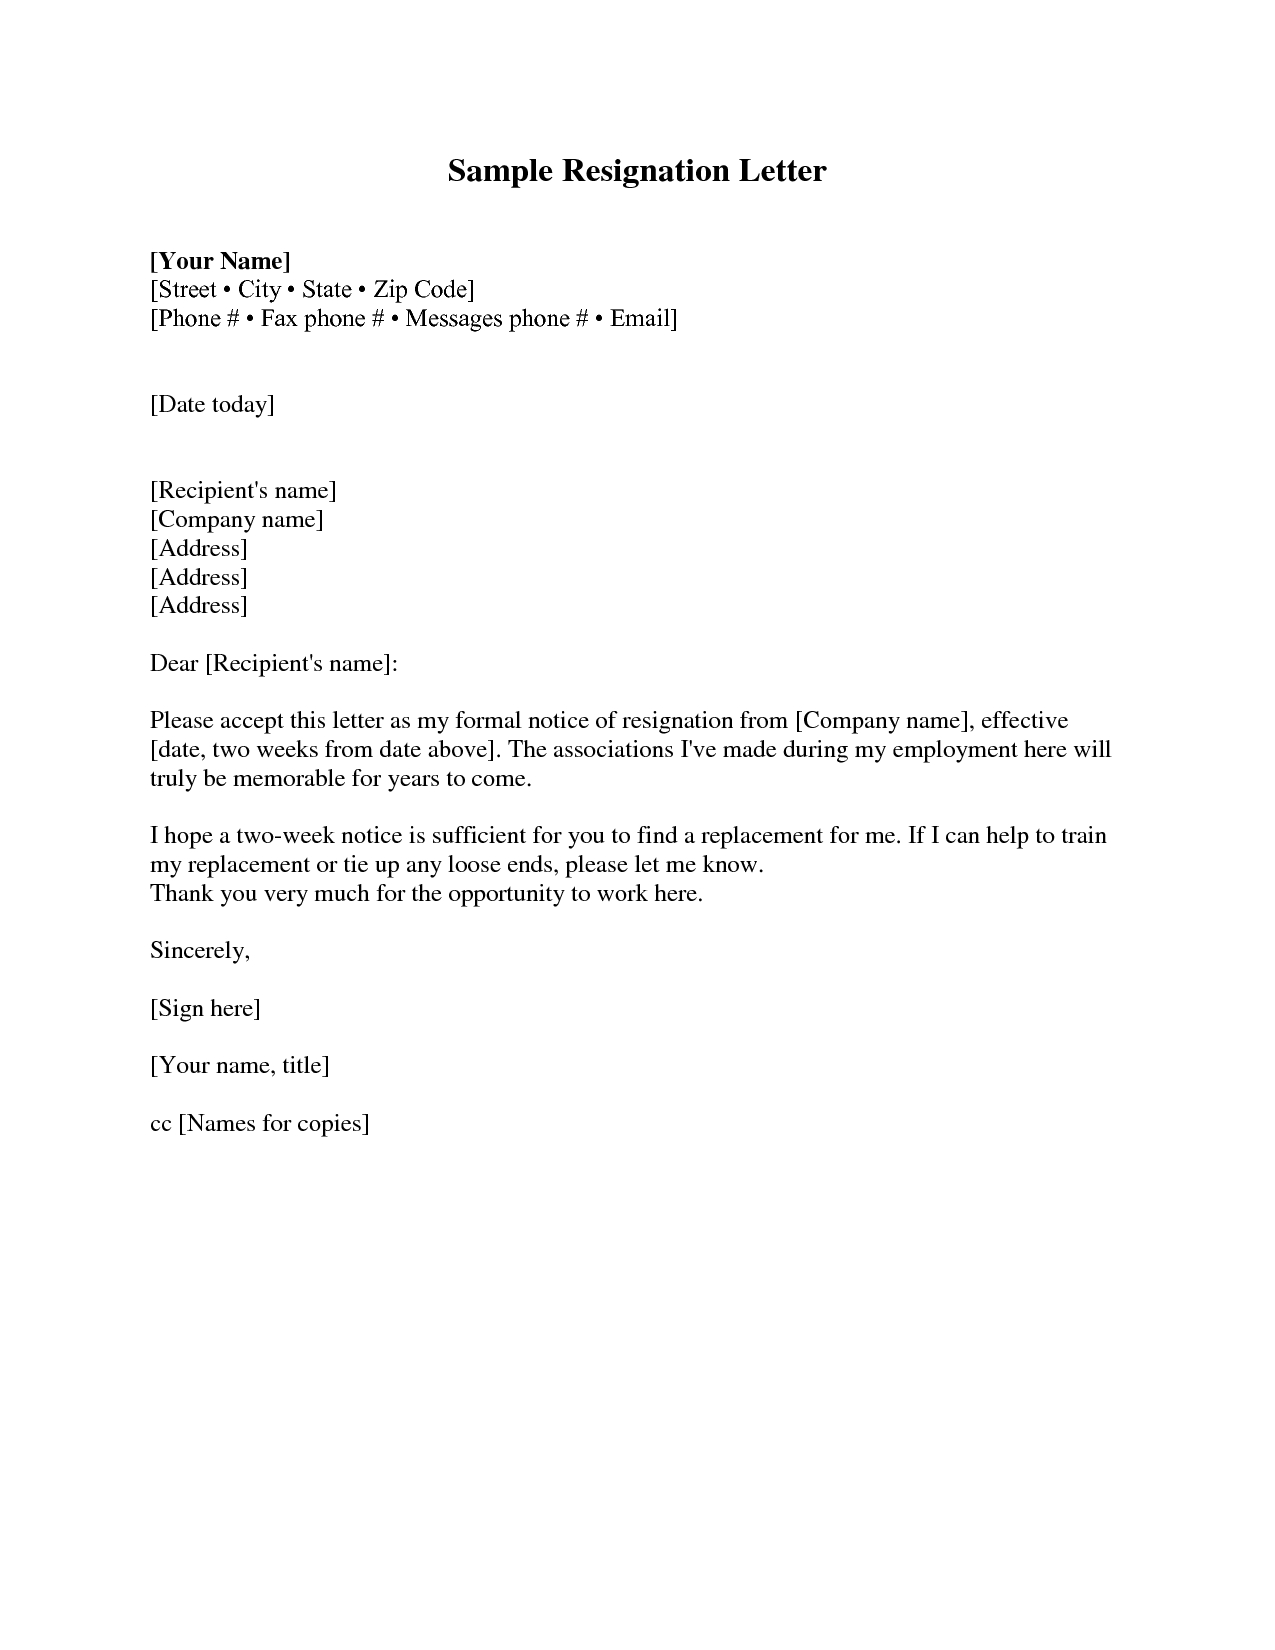 Formal Resignation Letter Template - Resignation Letter Sample 2 Weeks Notice Free2img